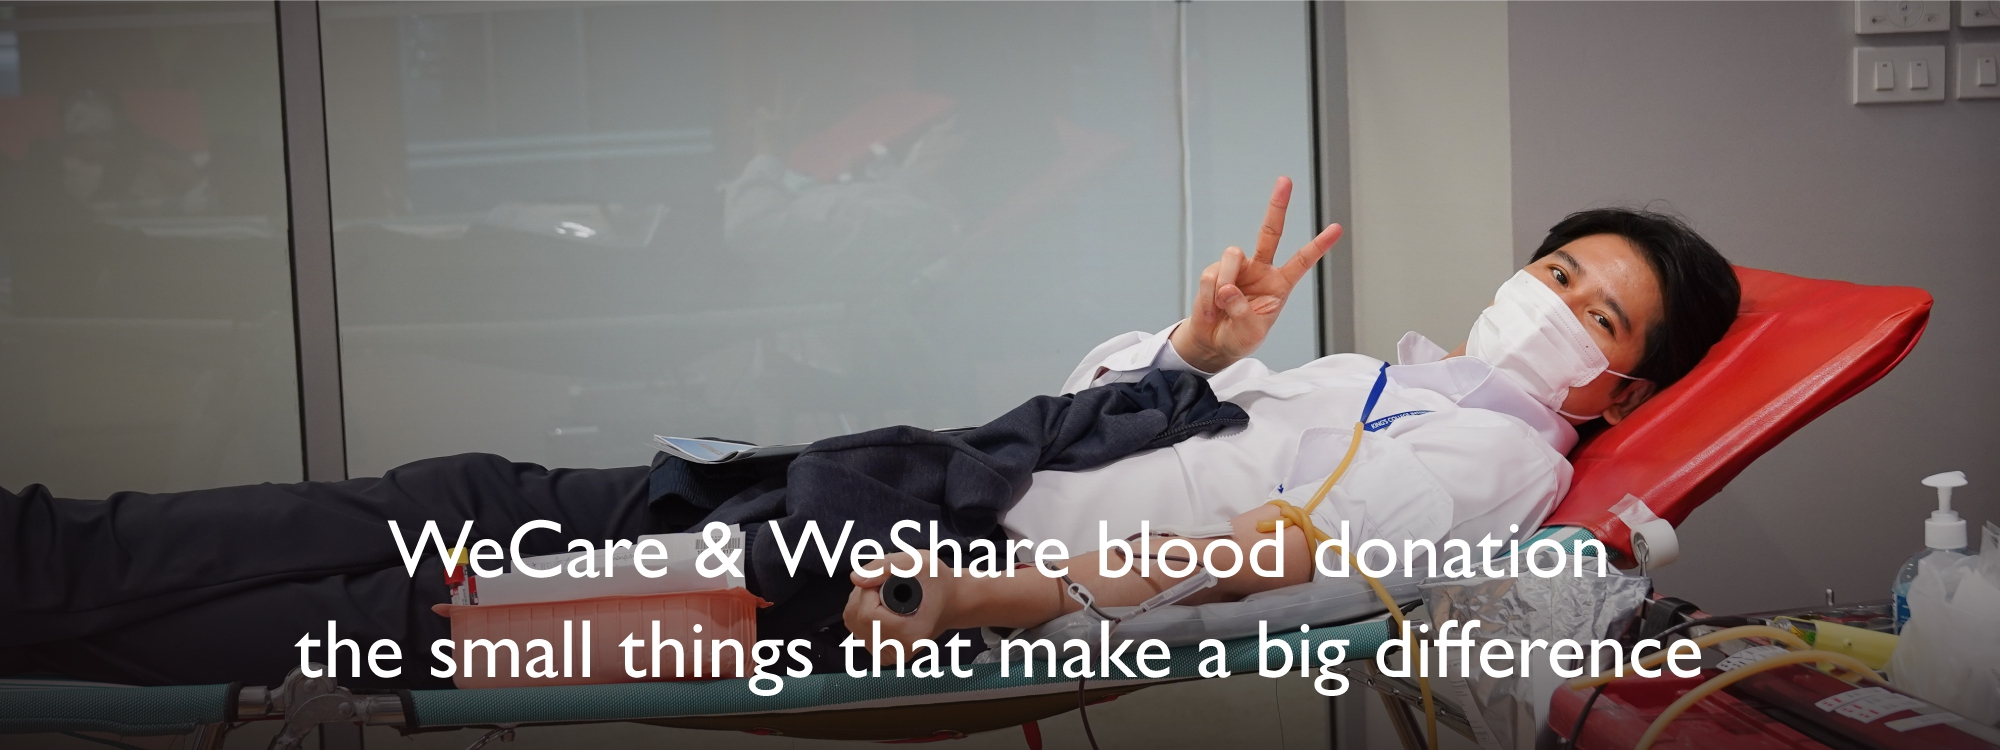 WeCare & WeShare blood donation